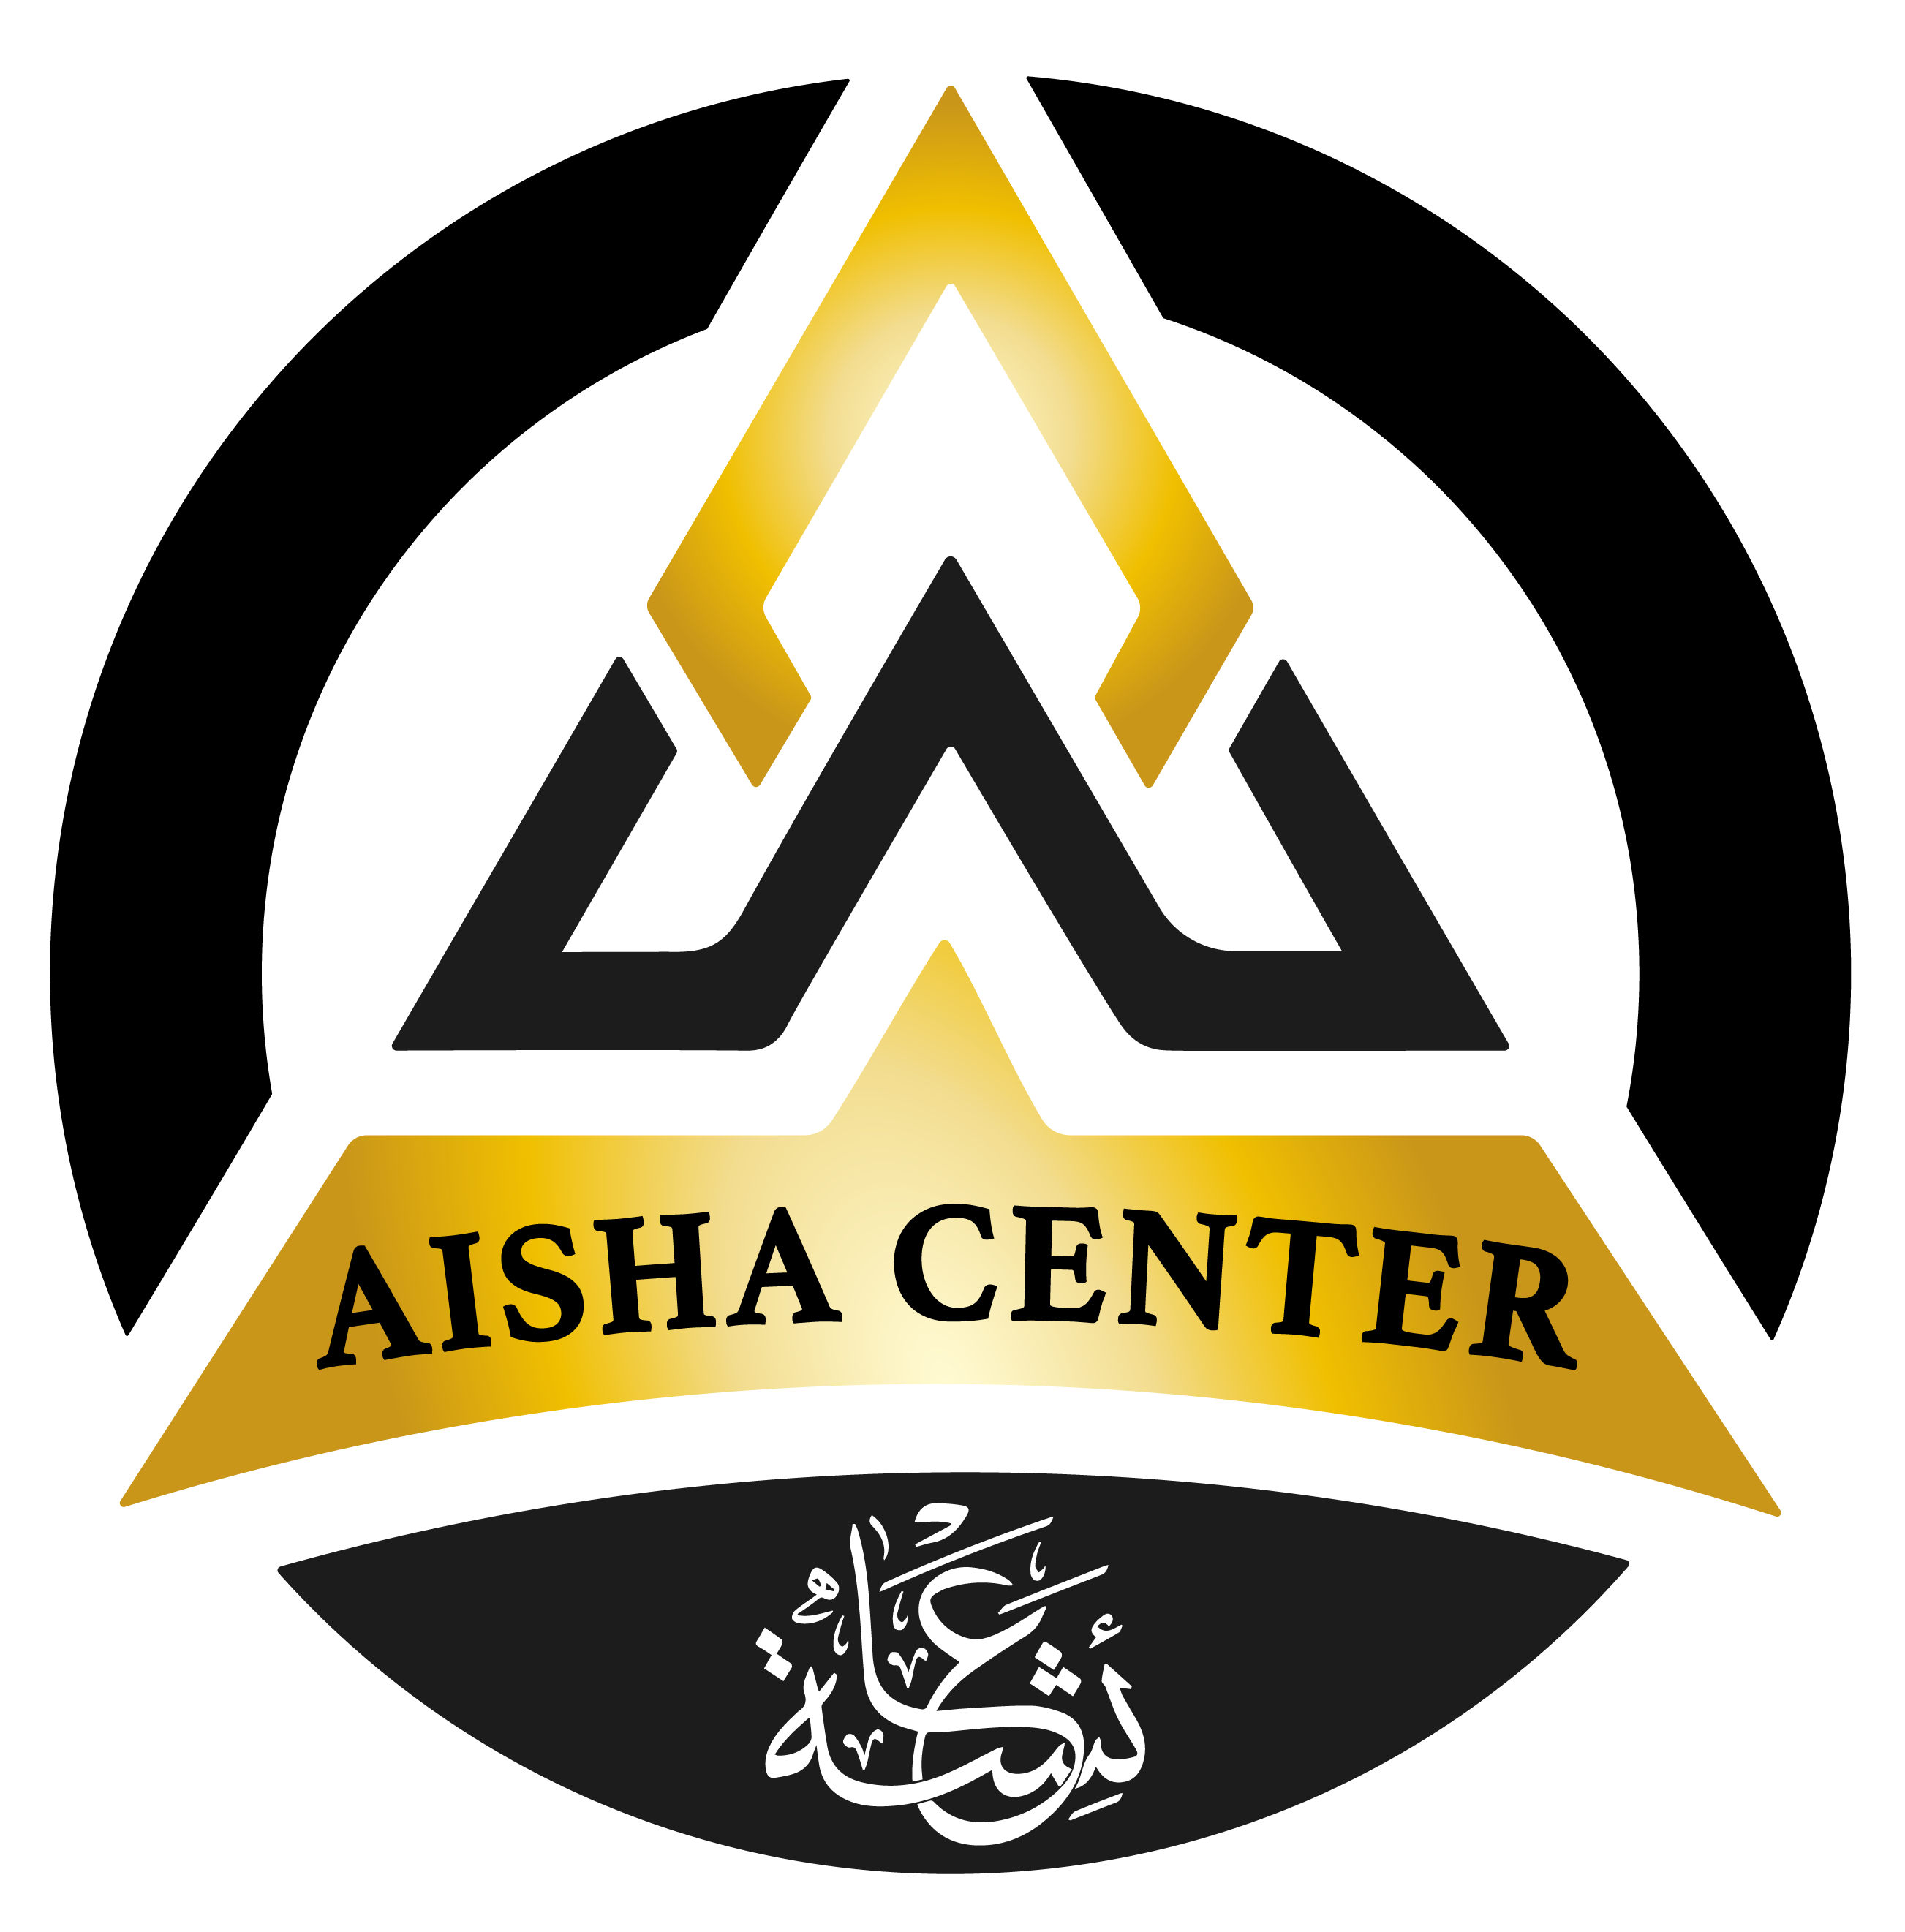 Aisha Center